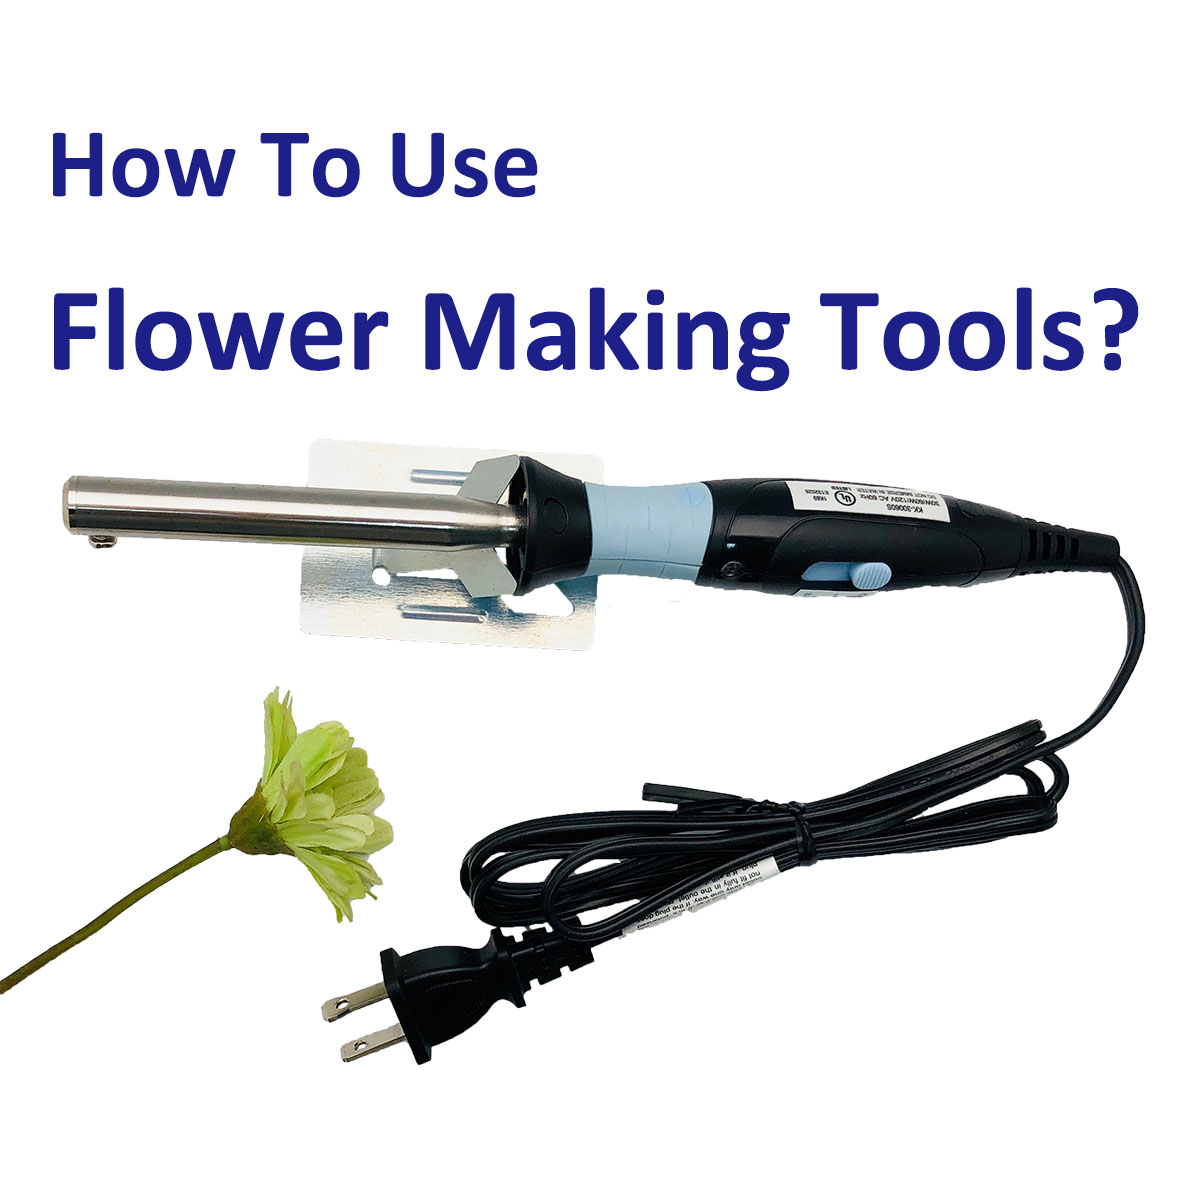 How to use flower making tools